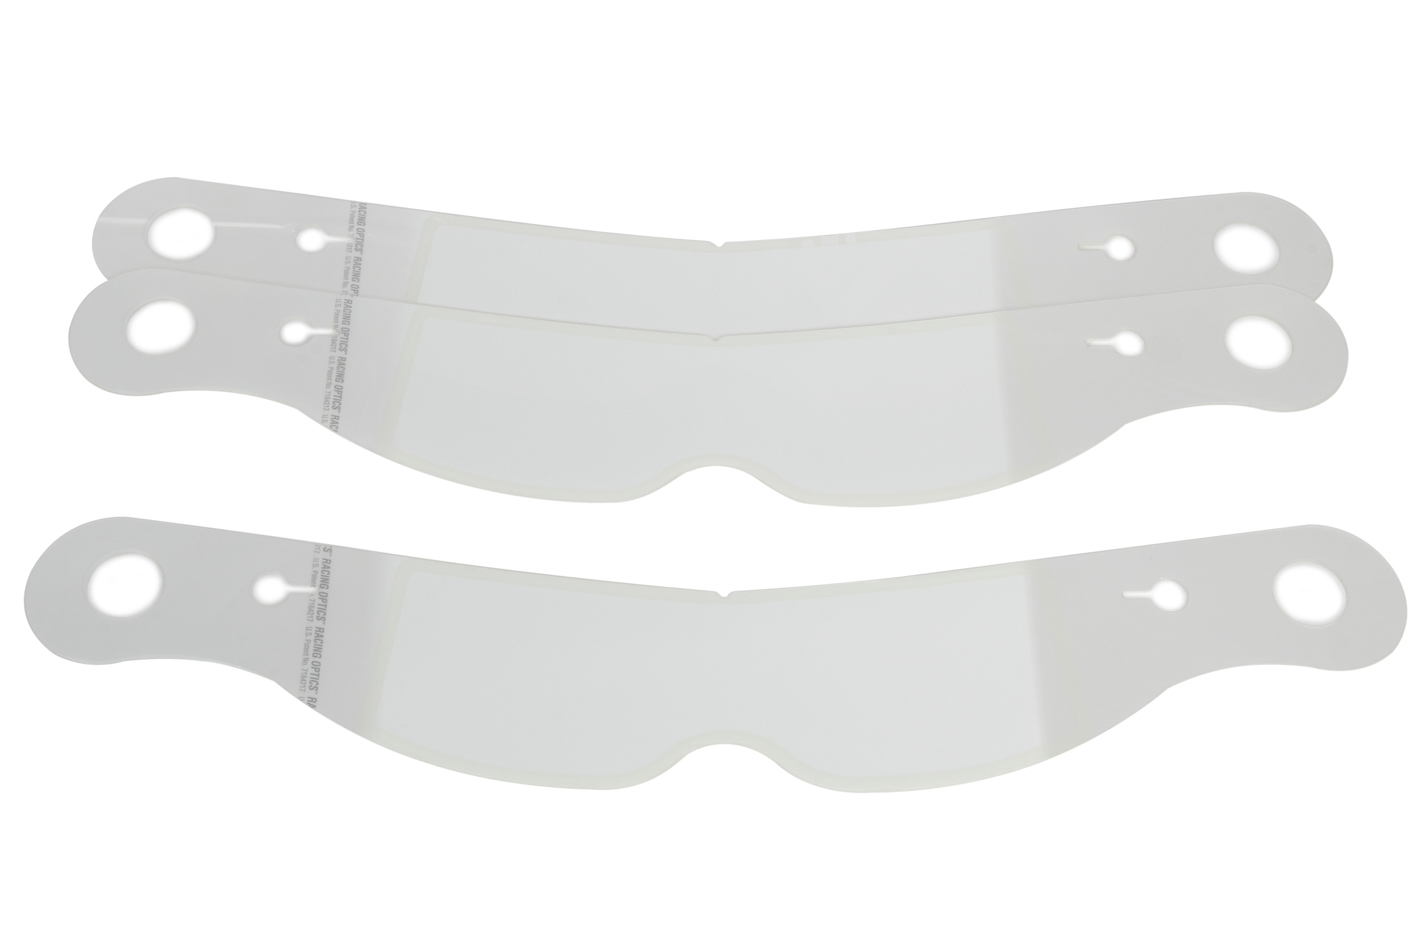 Racing Optics 10231CP Helmet Shield Tear Off, Perimeter Seal, 2 mm Thick, 11-1/2 in Center to Center, Nose Notch, Plastic, Clear, Impact Helmets, Set of 30